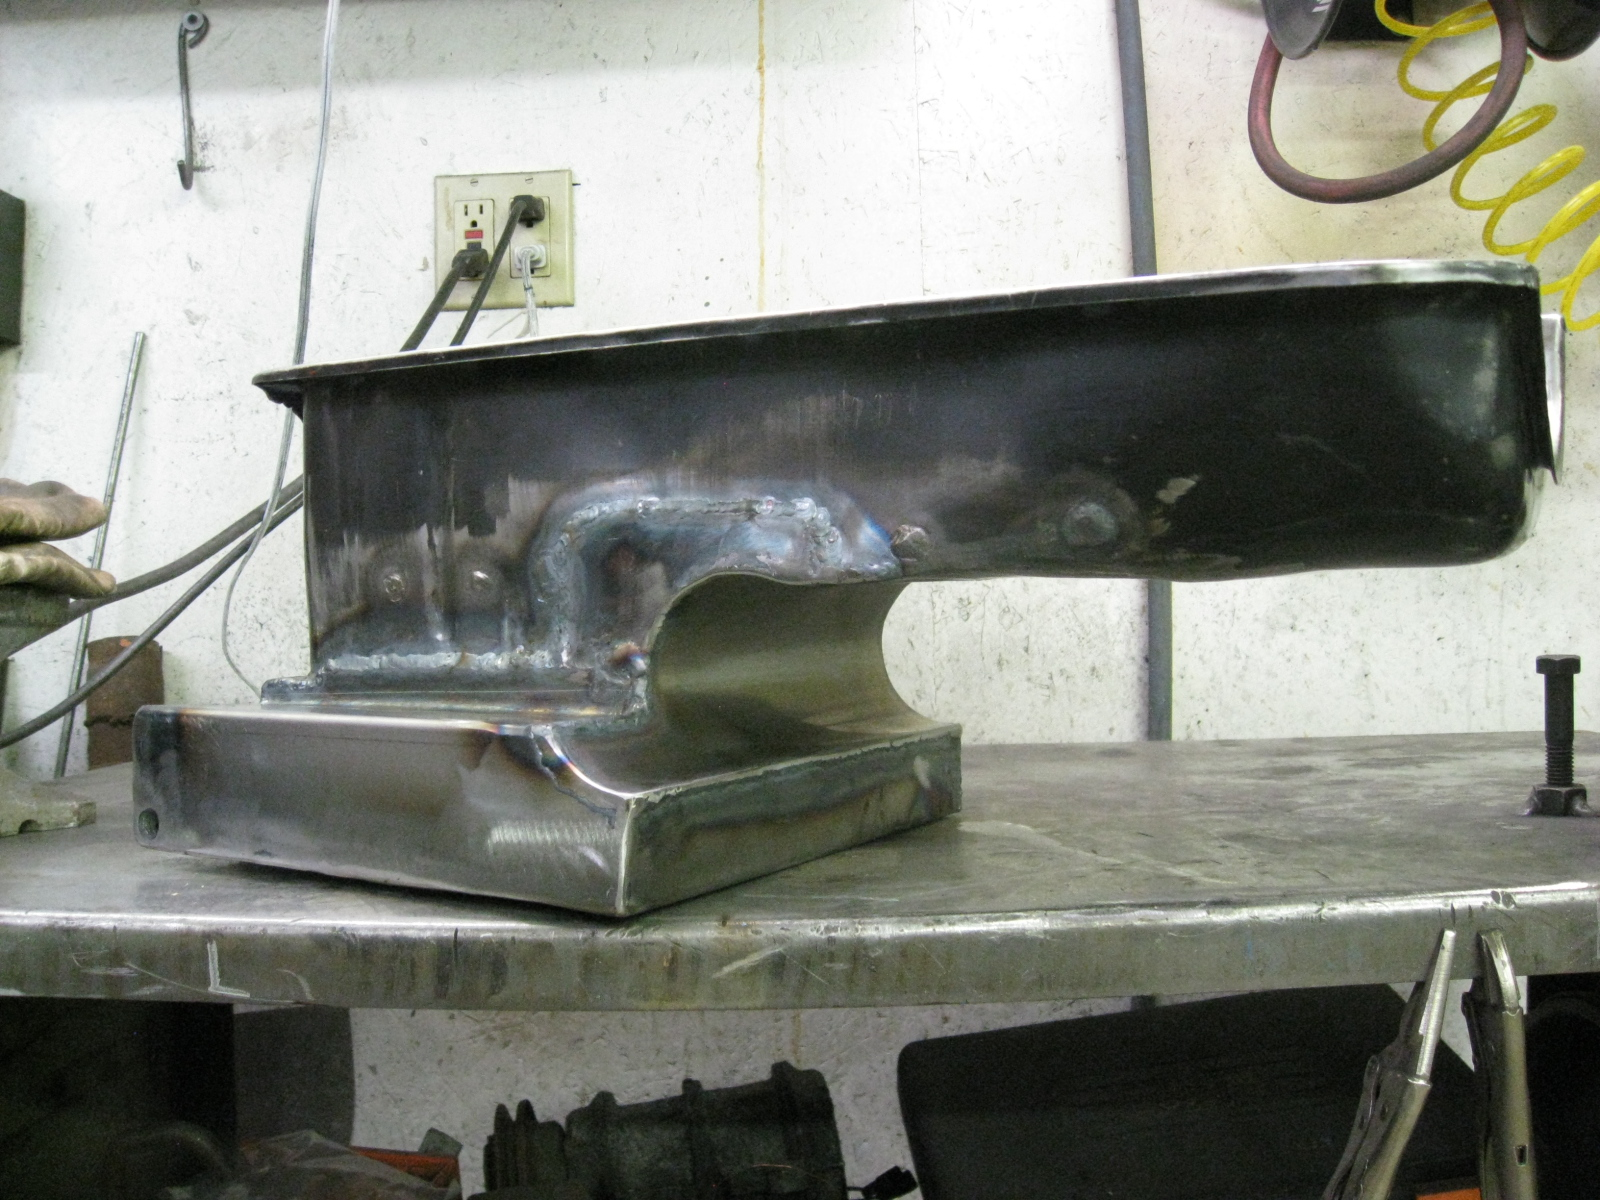 Second Gen Oil Pan